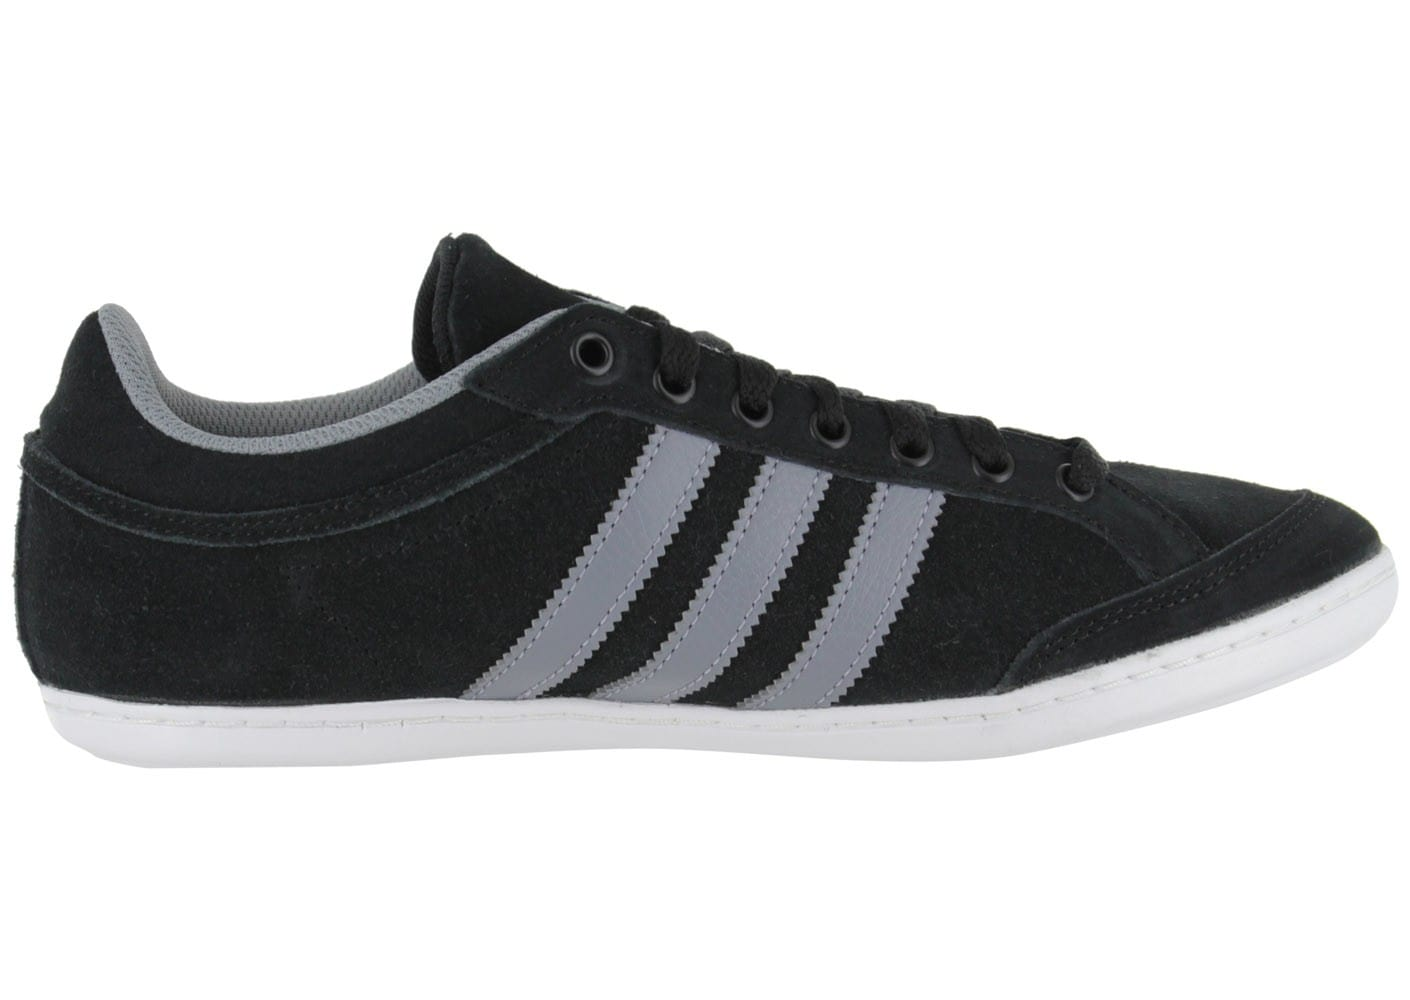 adidas Plimcana Noire Chaussures Baskets homme Chausport